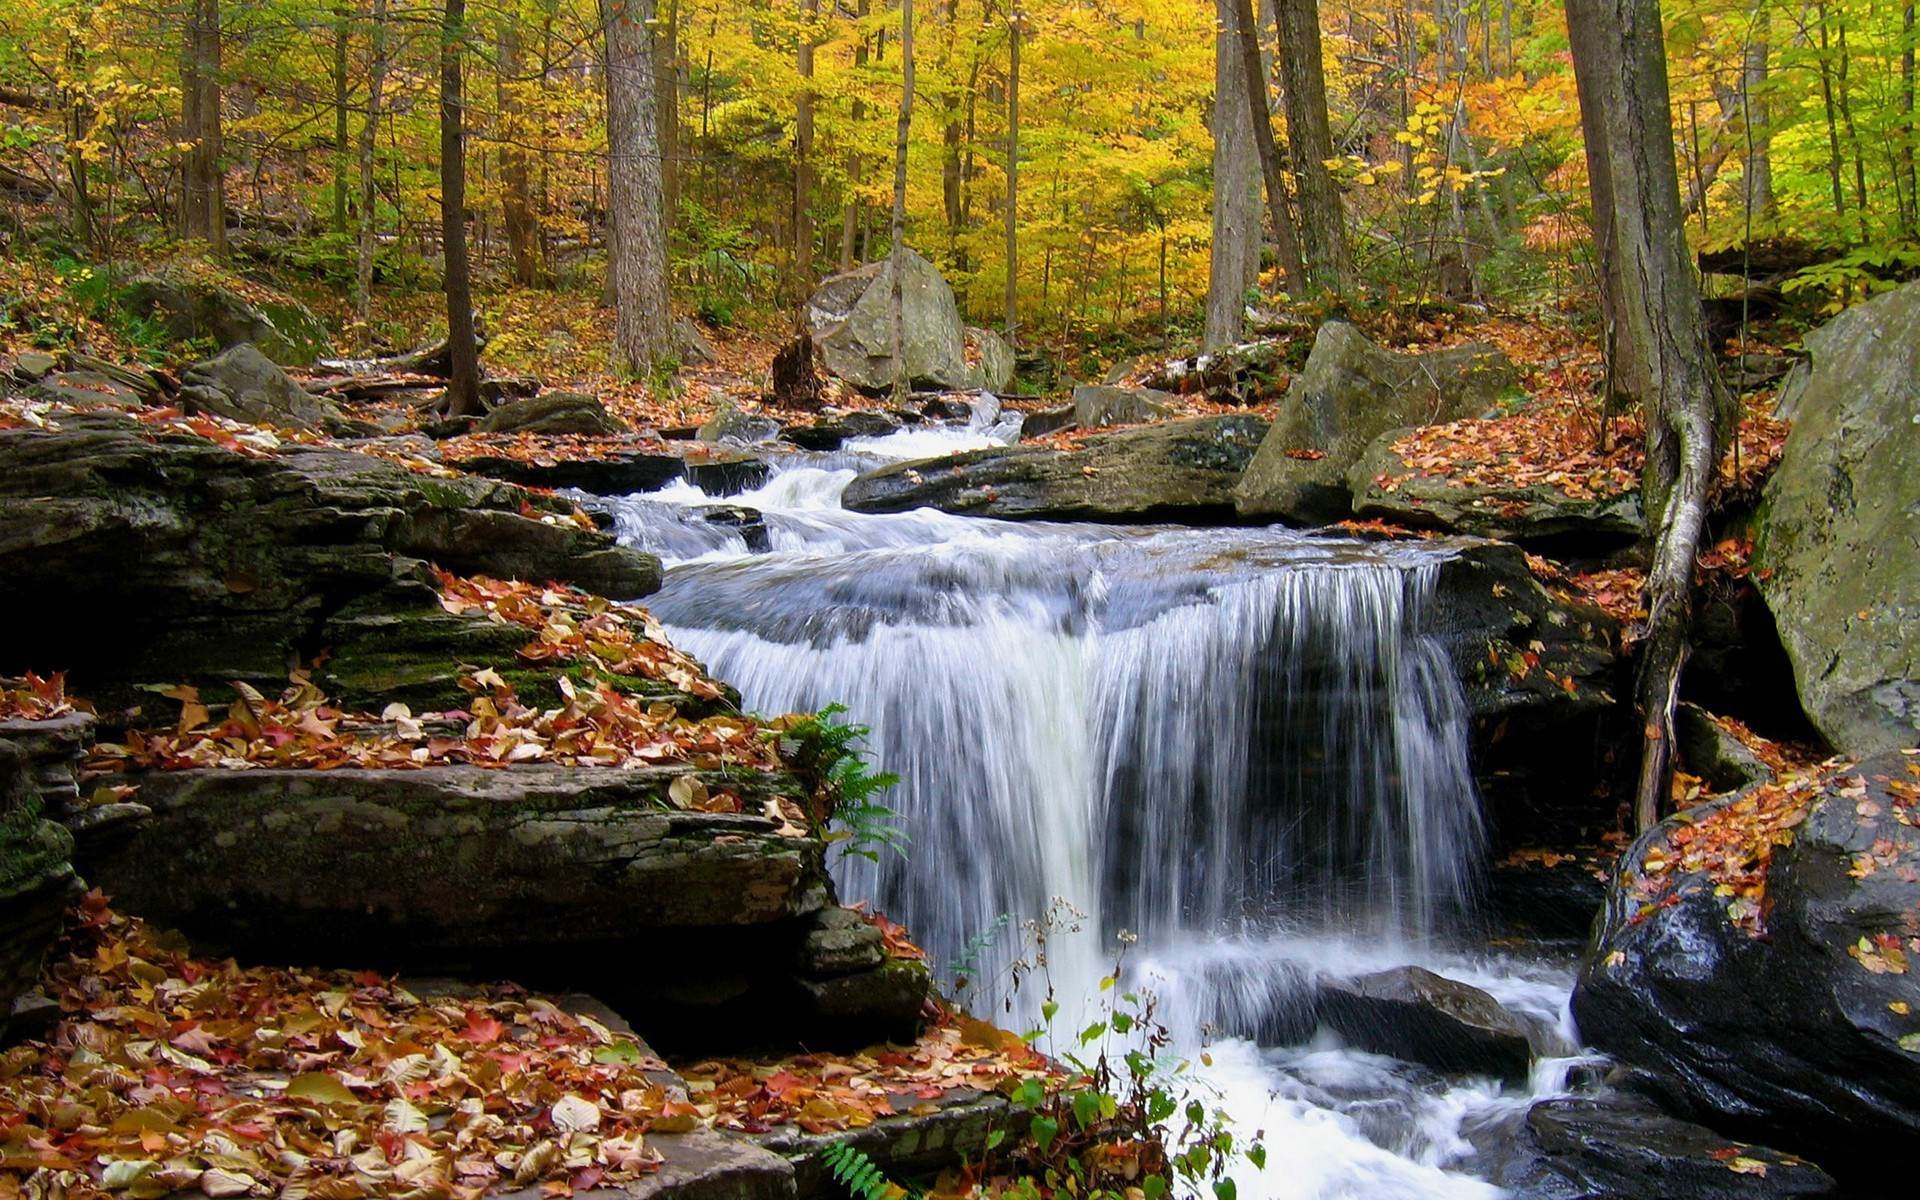 Thanks for downloading Waterfall in the autumn morning wallpaper 1920x1200